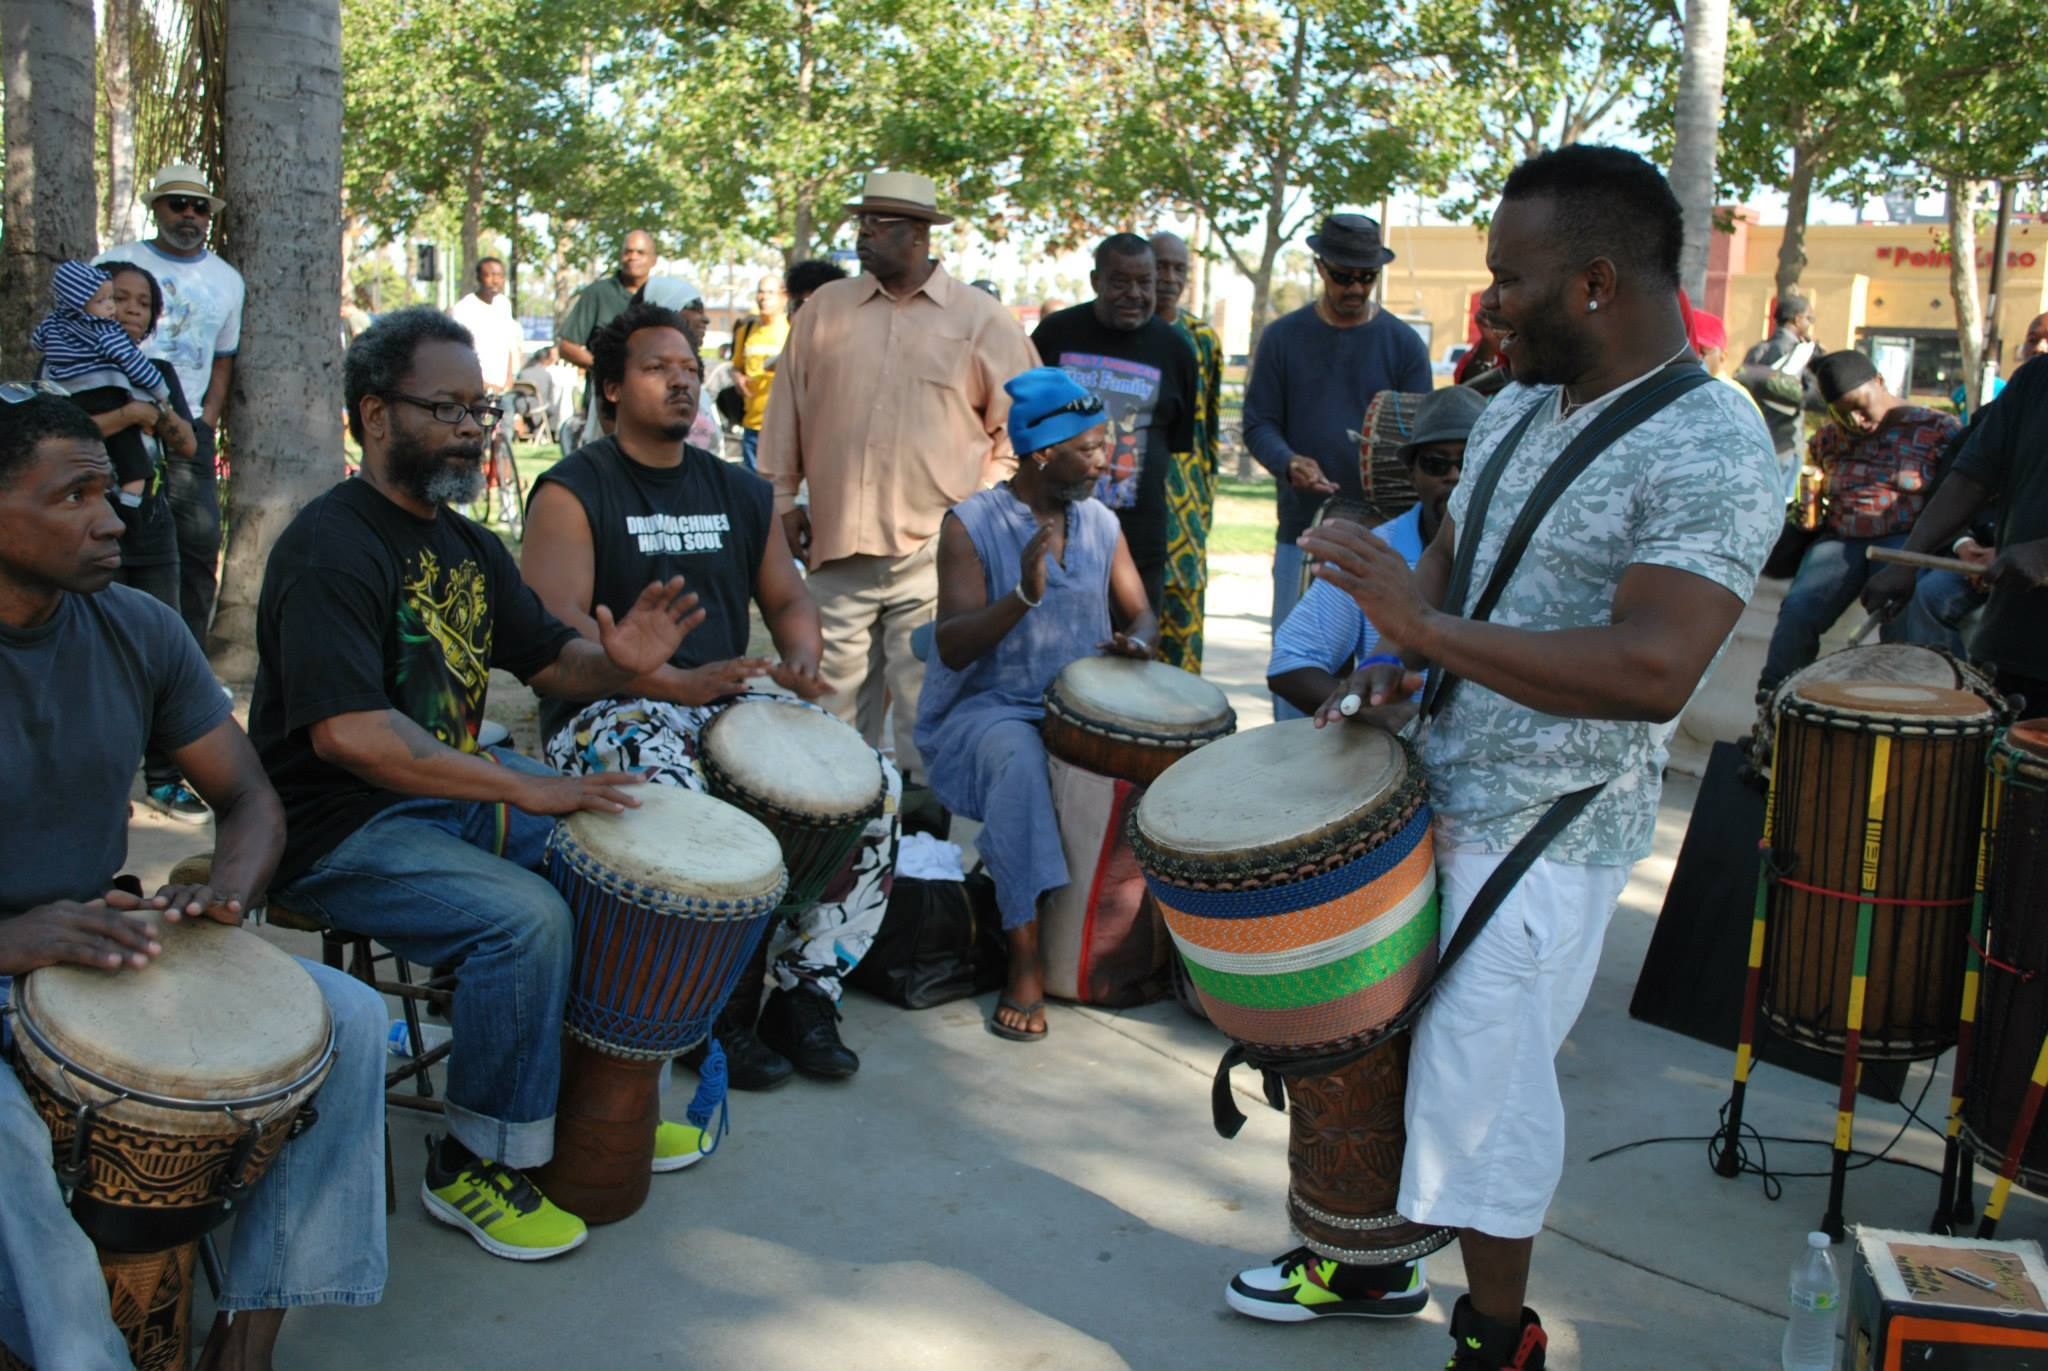 The famous drum circle at Leimert Plaza Park